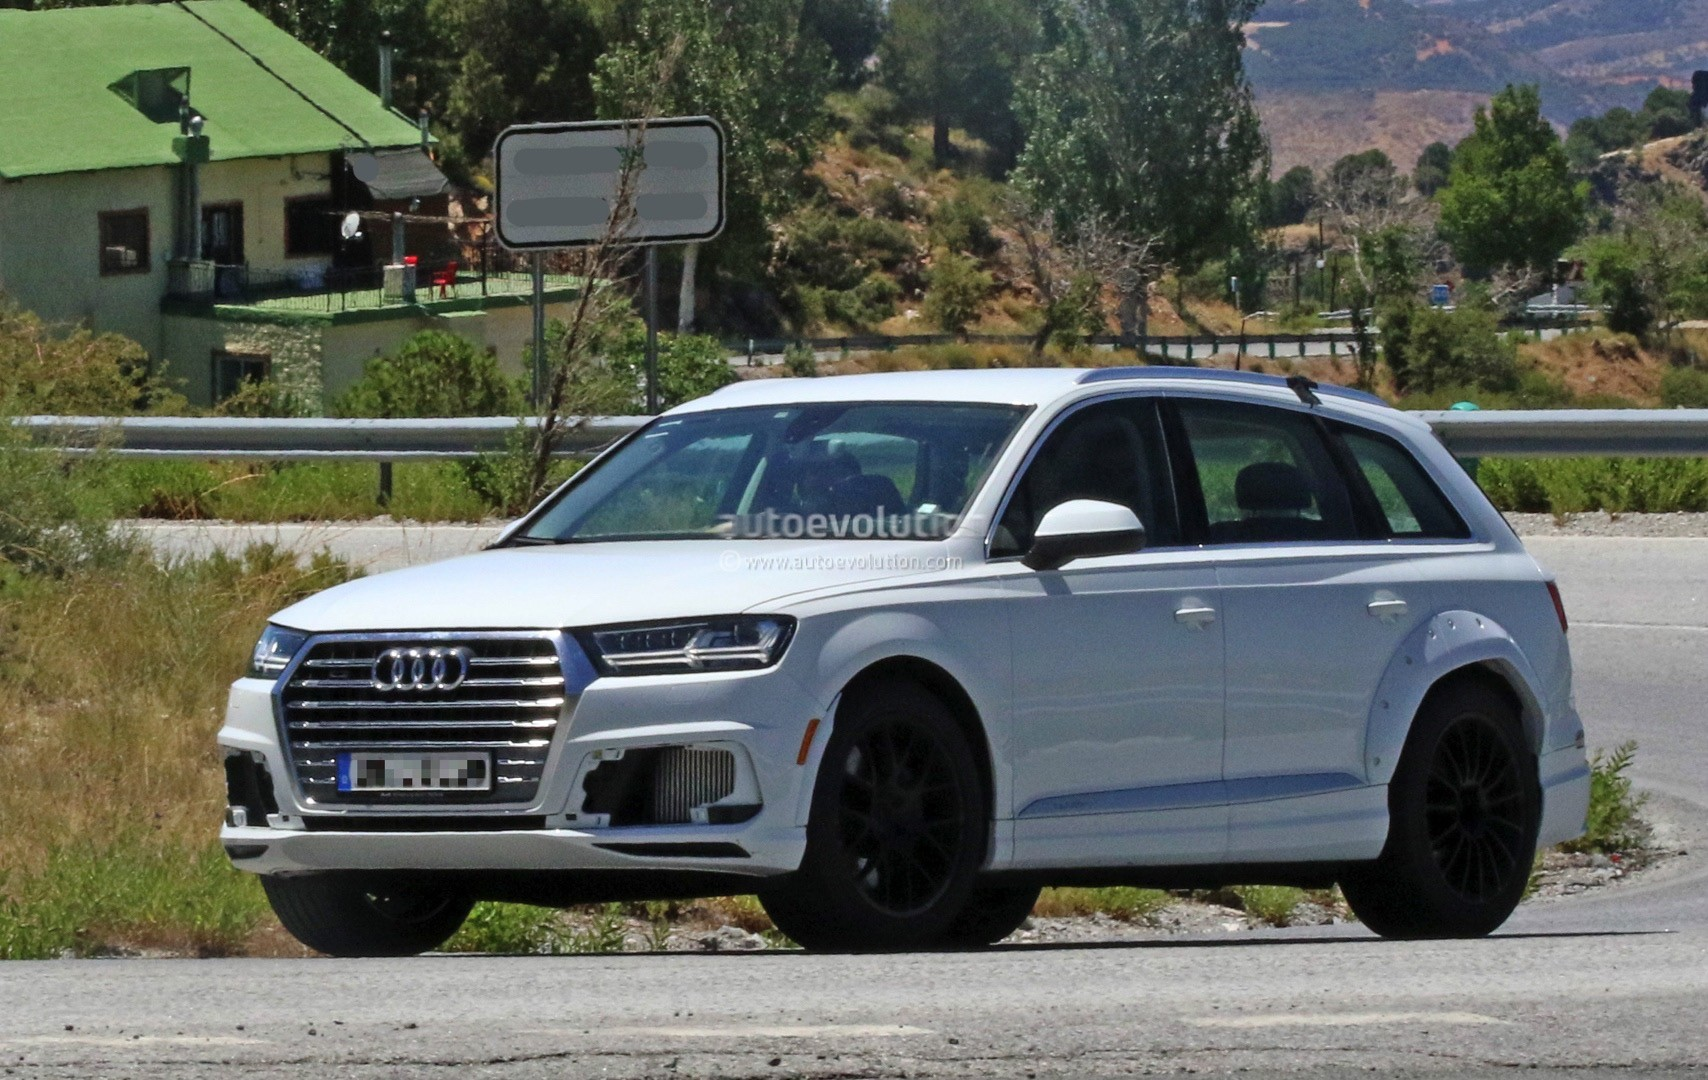 2018 Audi Q8 Test Mule Spied Wearing Q7 Bodyshell Autoevolution